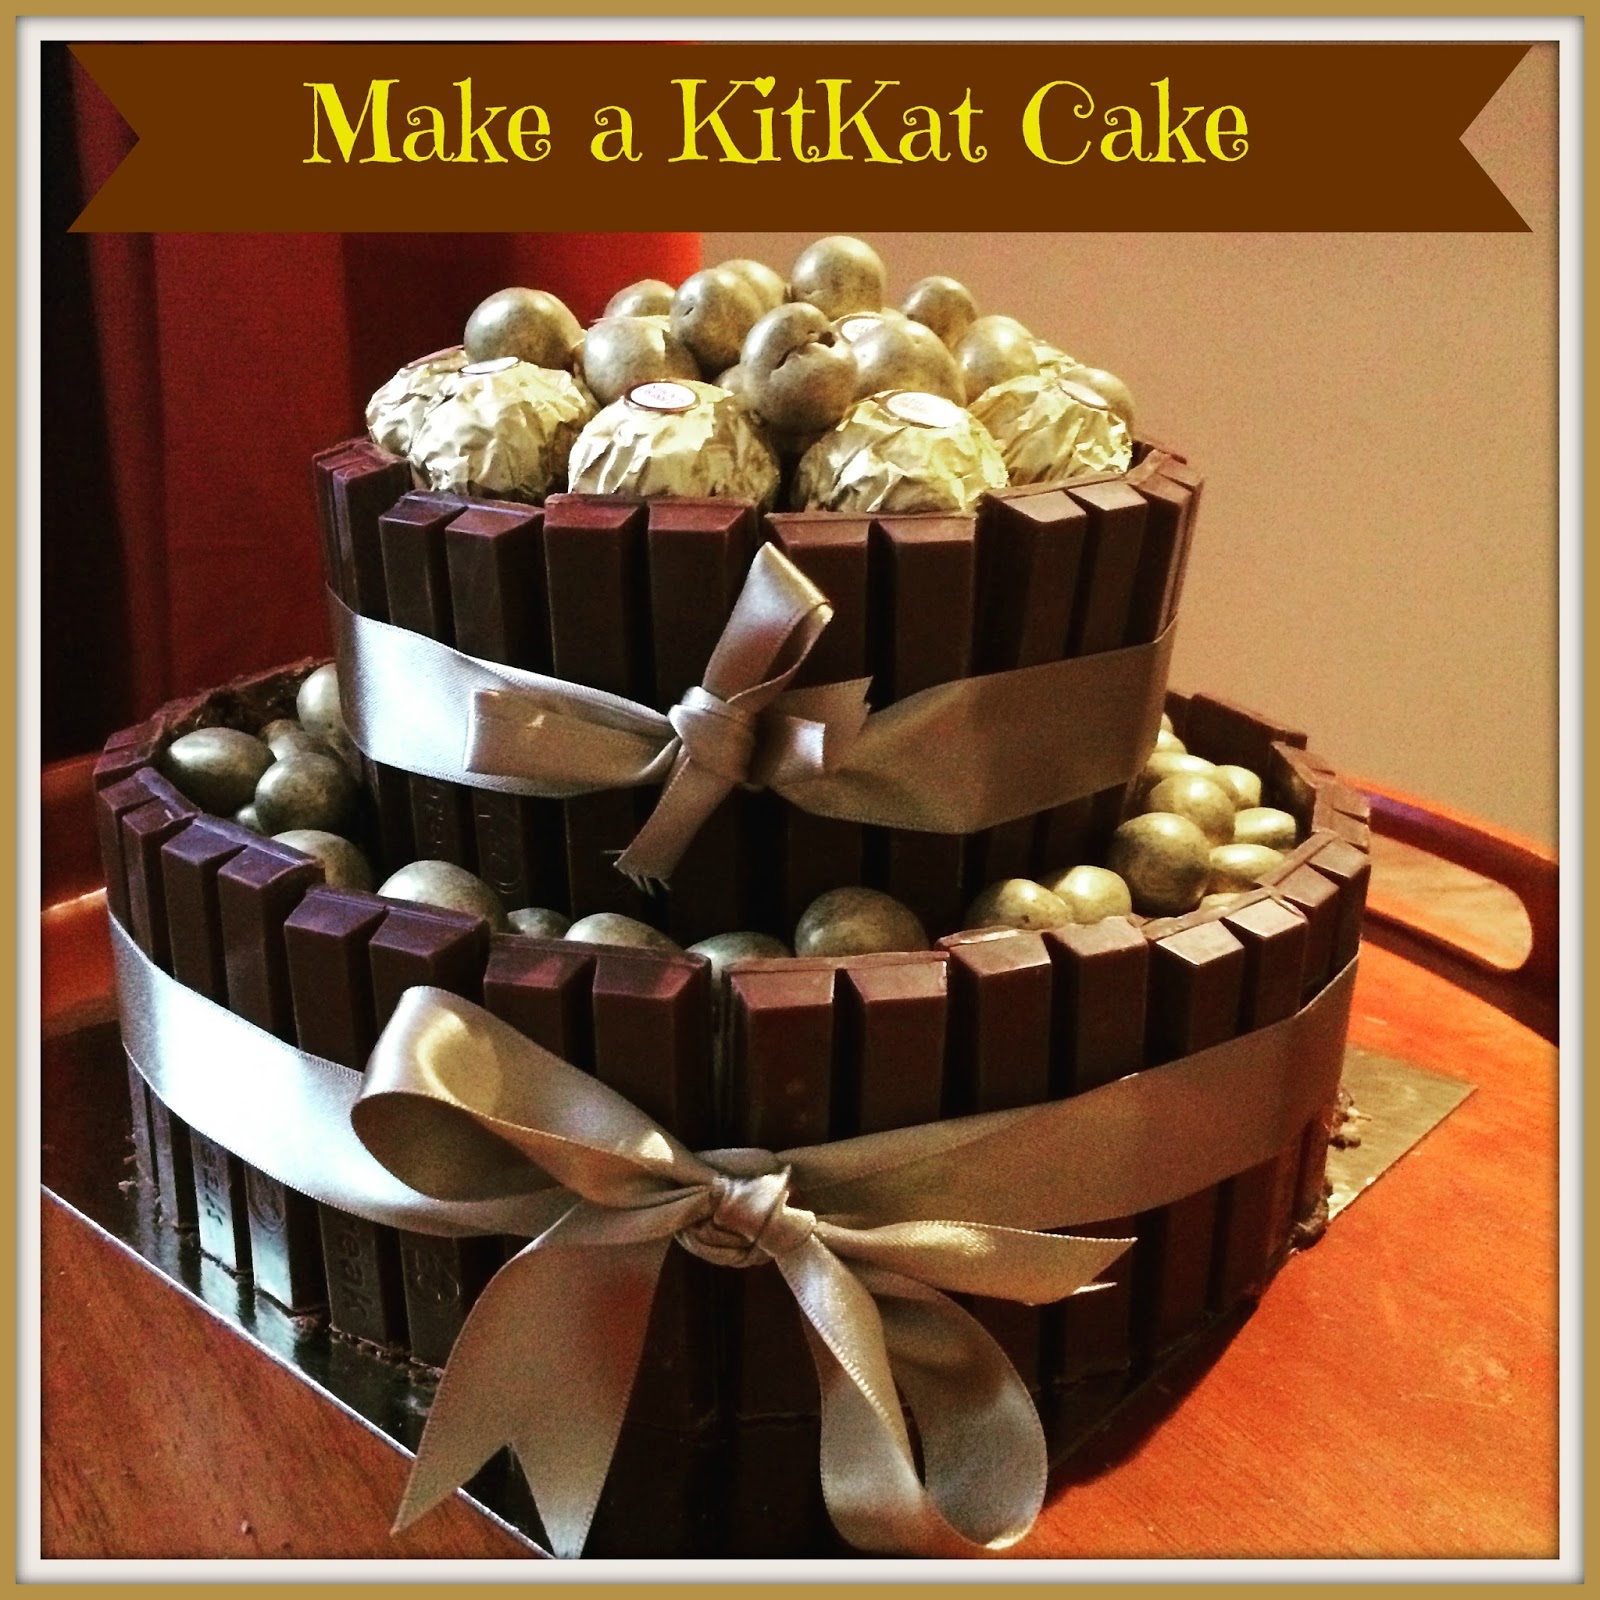 The Syders How To Make A Two Tier KitKat Cake